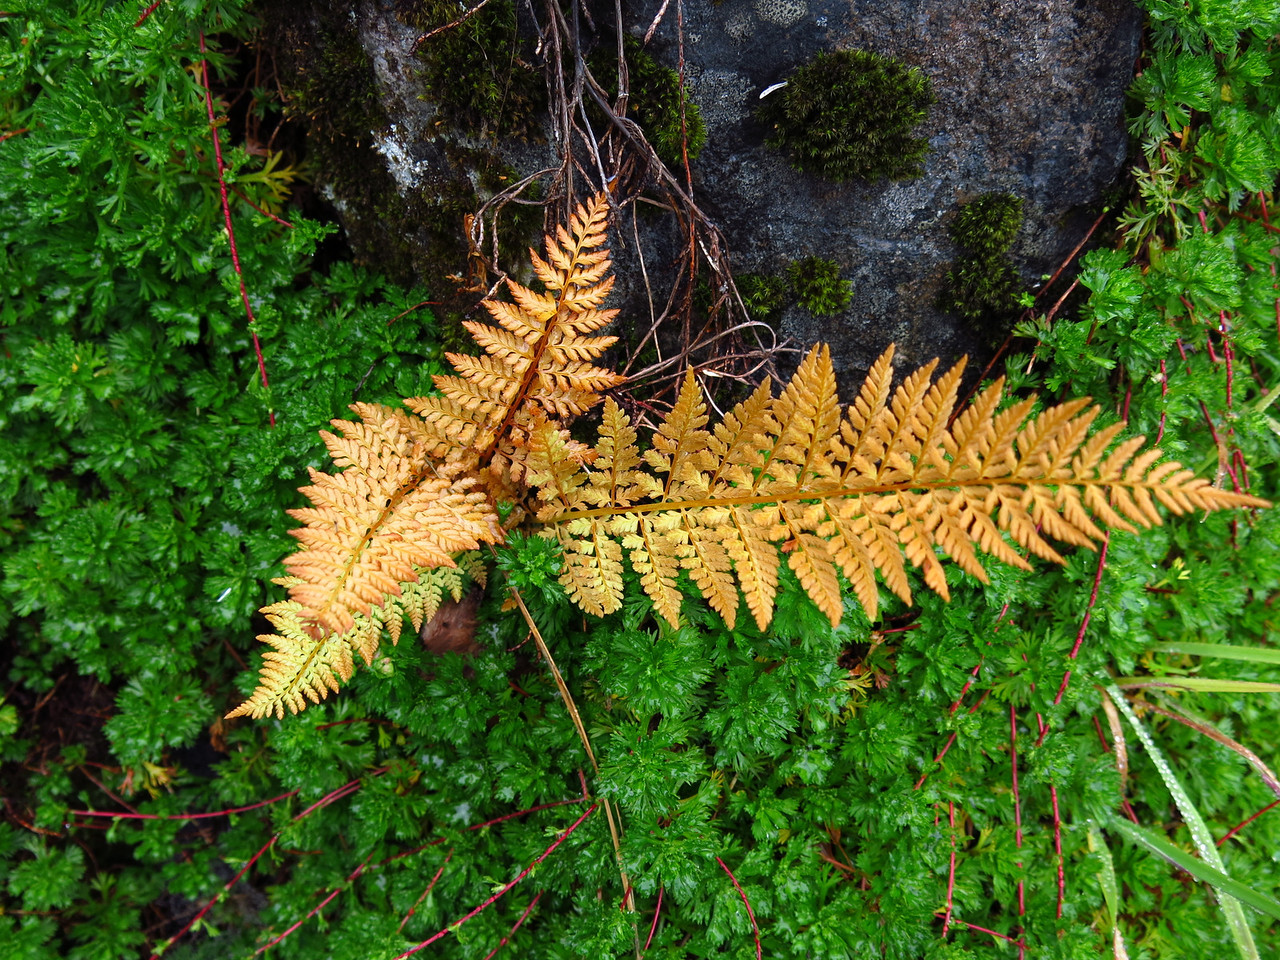 A yellow fern.